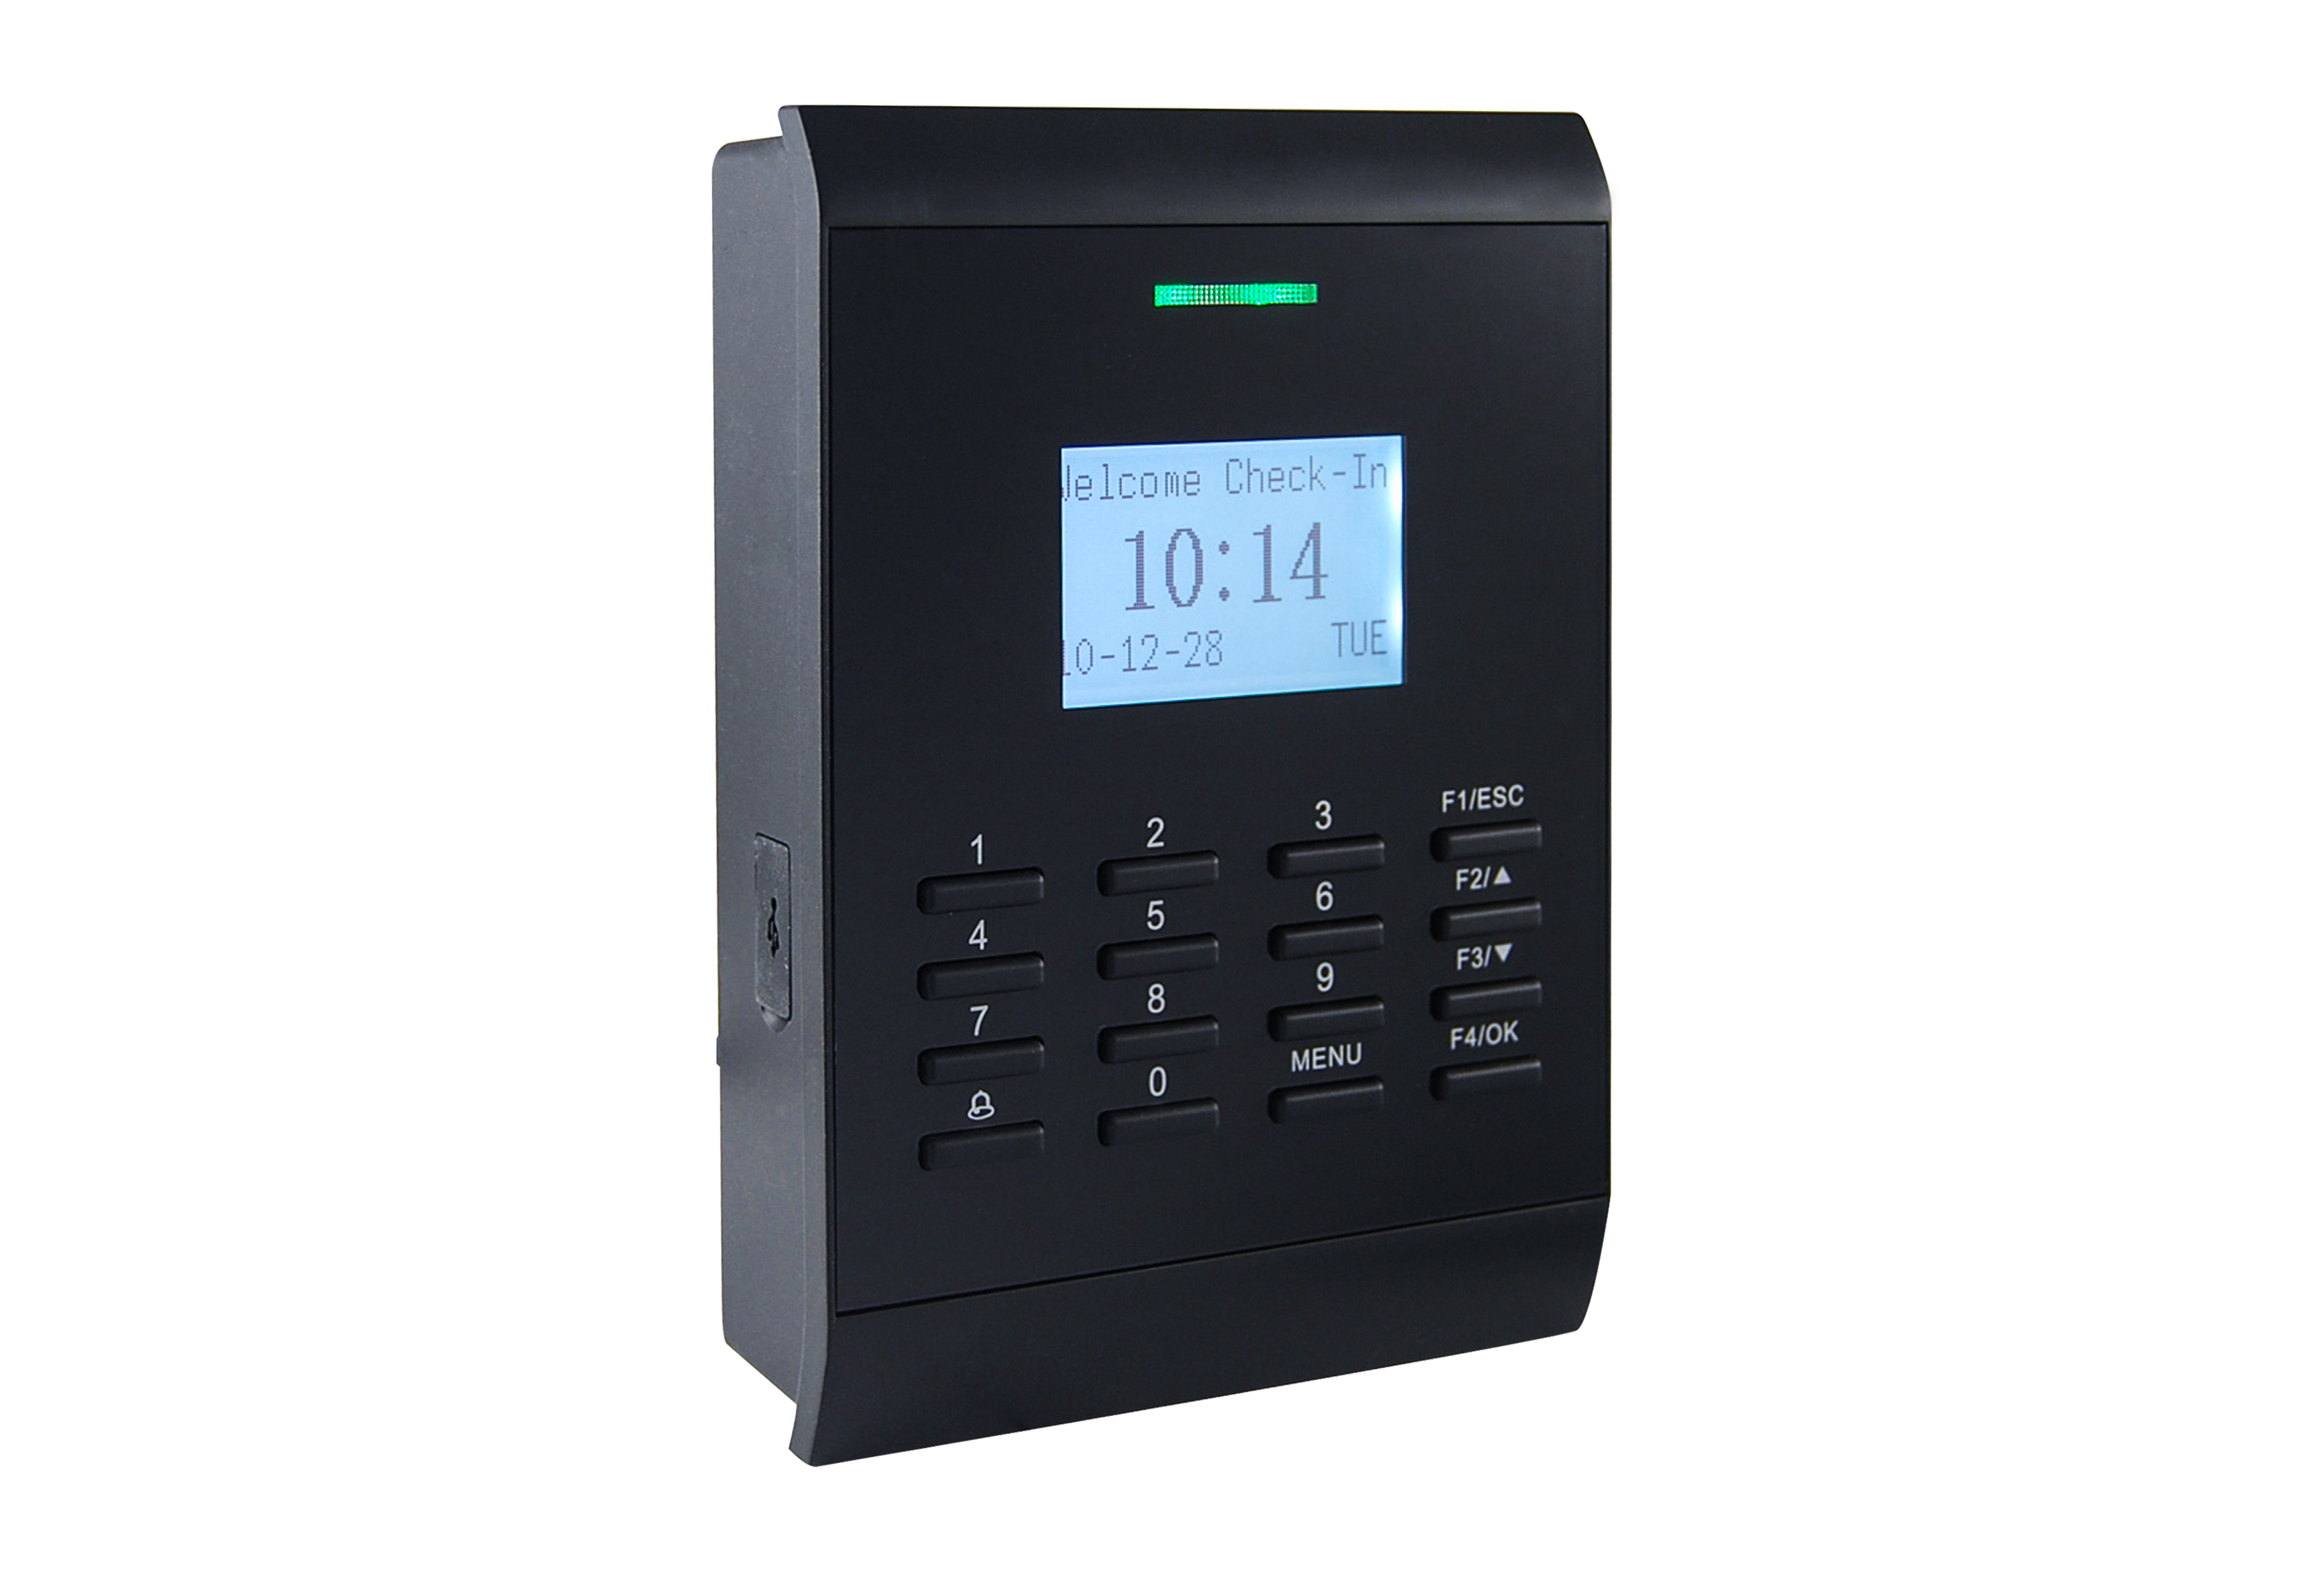 Sc403 Access Control And Attendance Machine Rfid Card And Pin